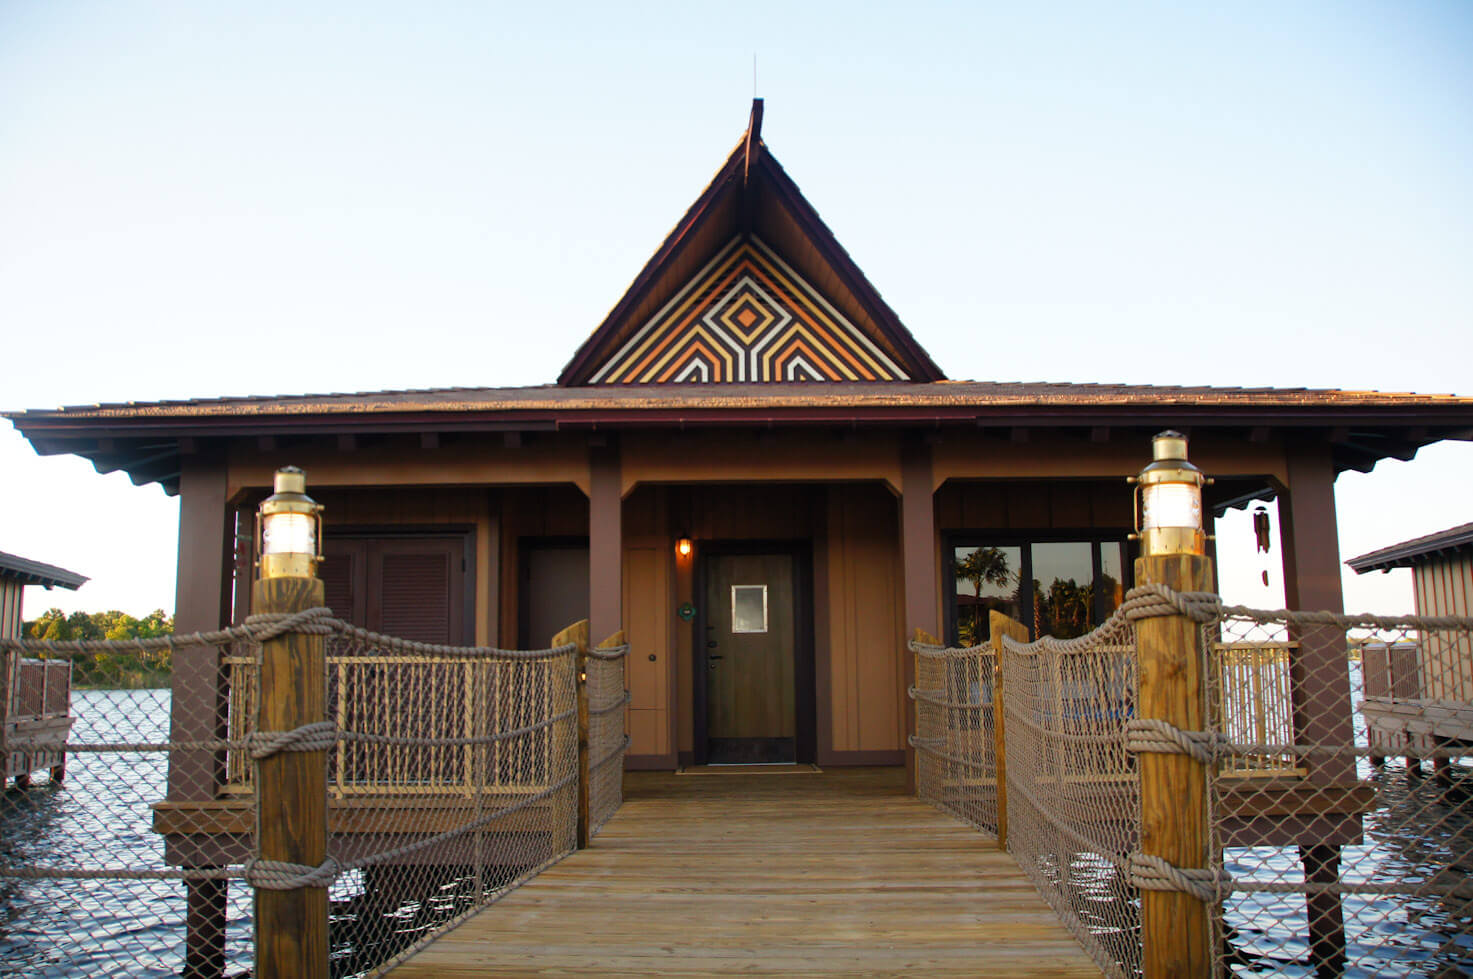 polynesian village resort adds new tropical addition to